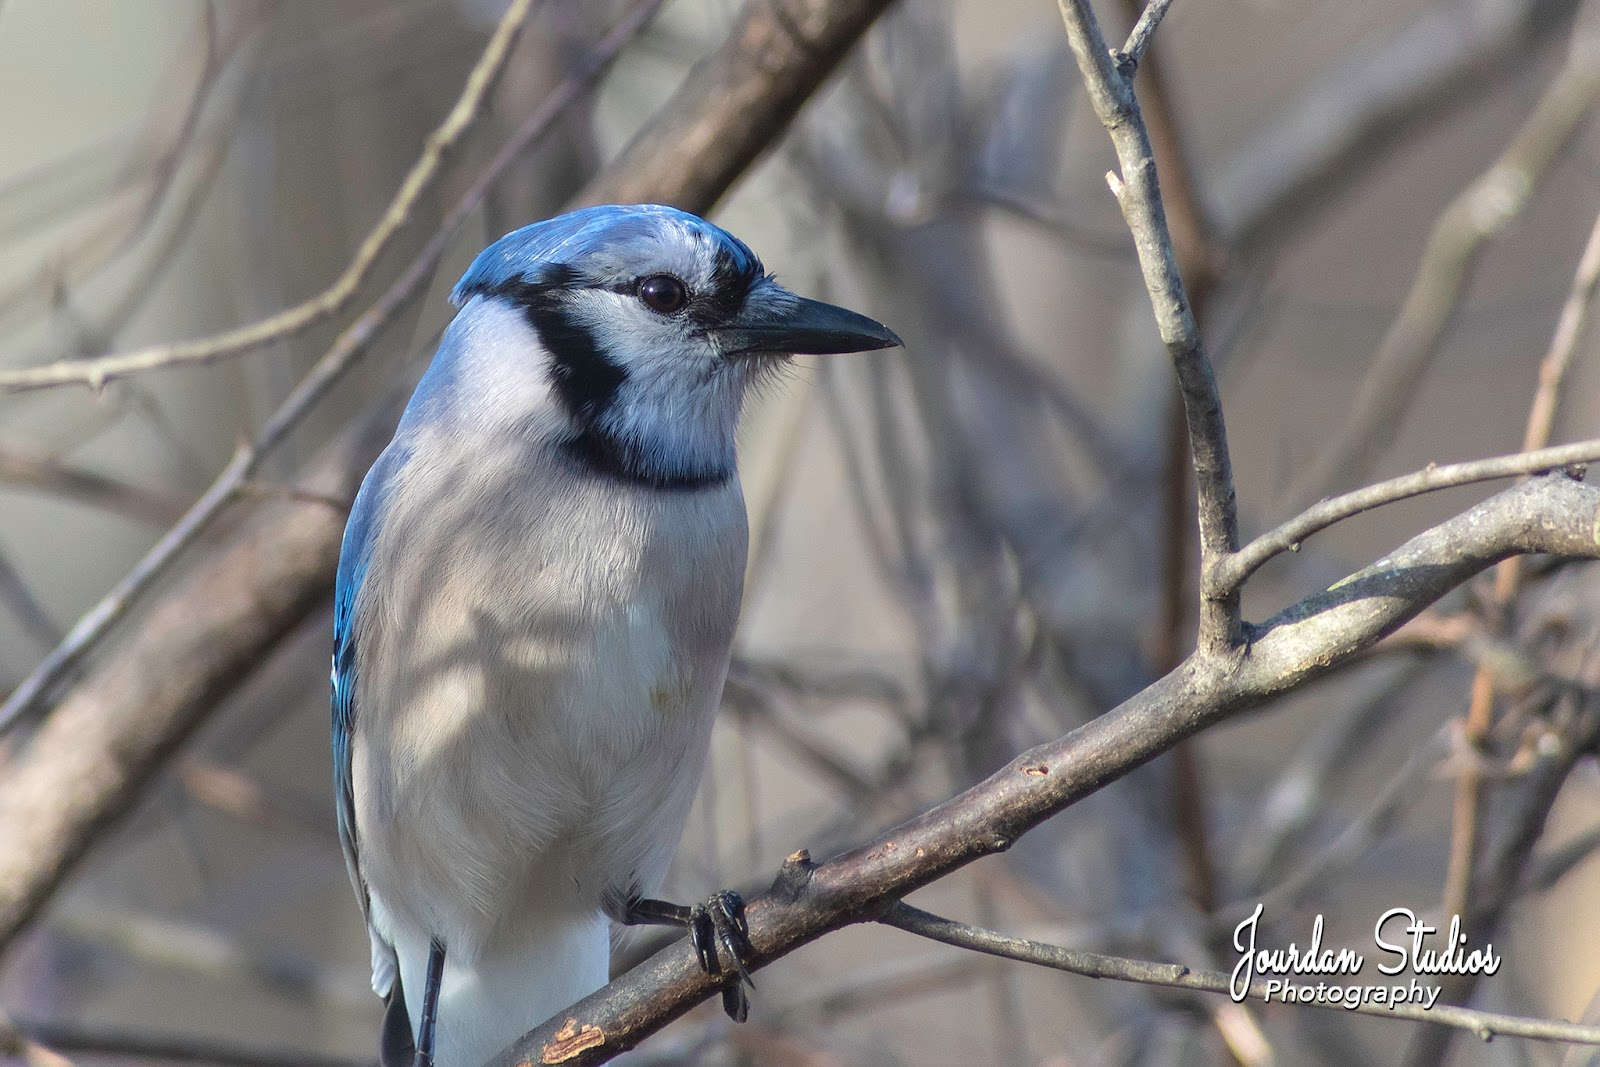 Jerry's Digiscoping Page: Digiscoping with the